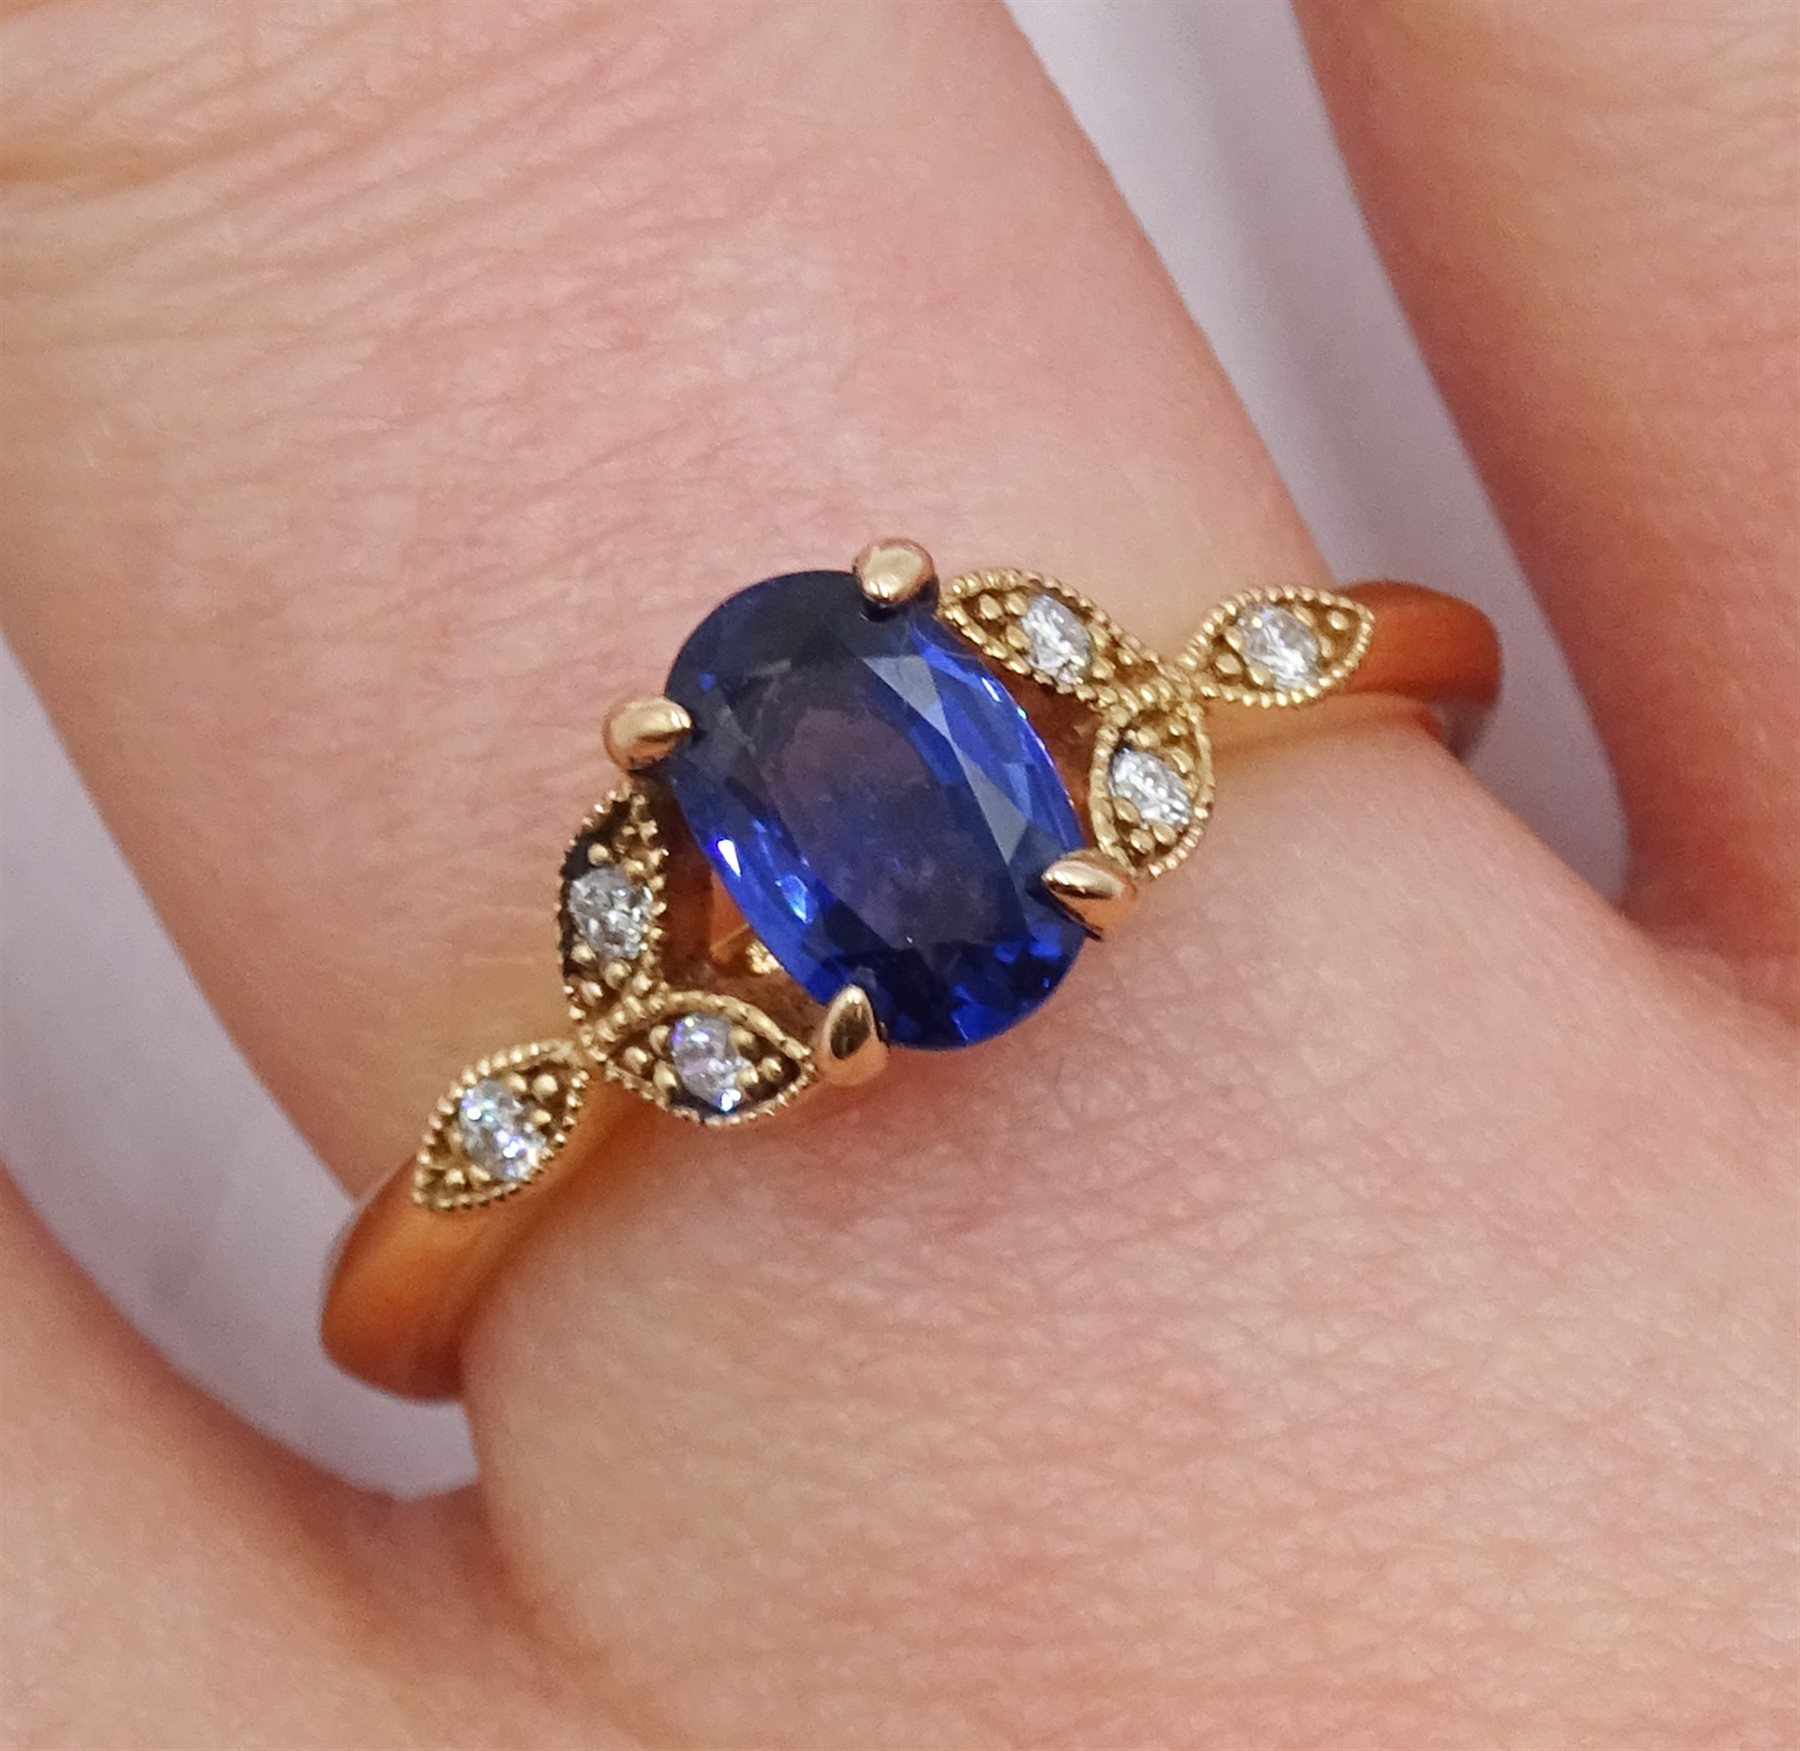 18ct gold oval sapphire ring, with diamond set shoulders, hallmarked, sapphire approx 0.80 carat - Image 2 of 5